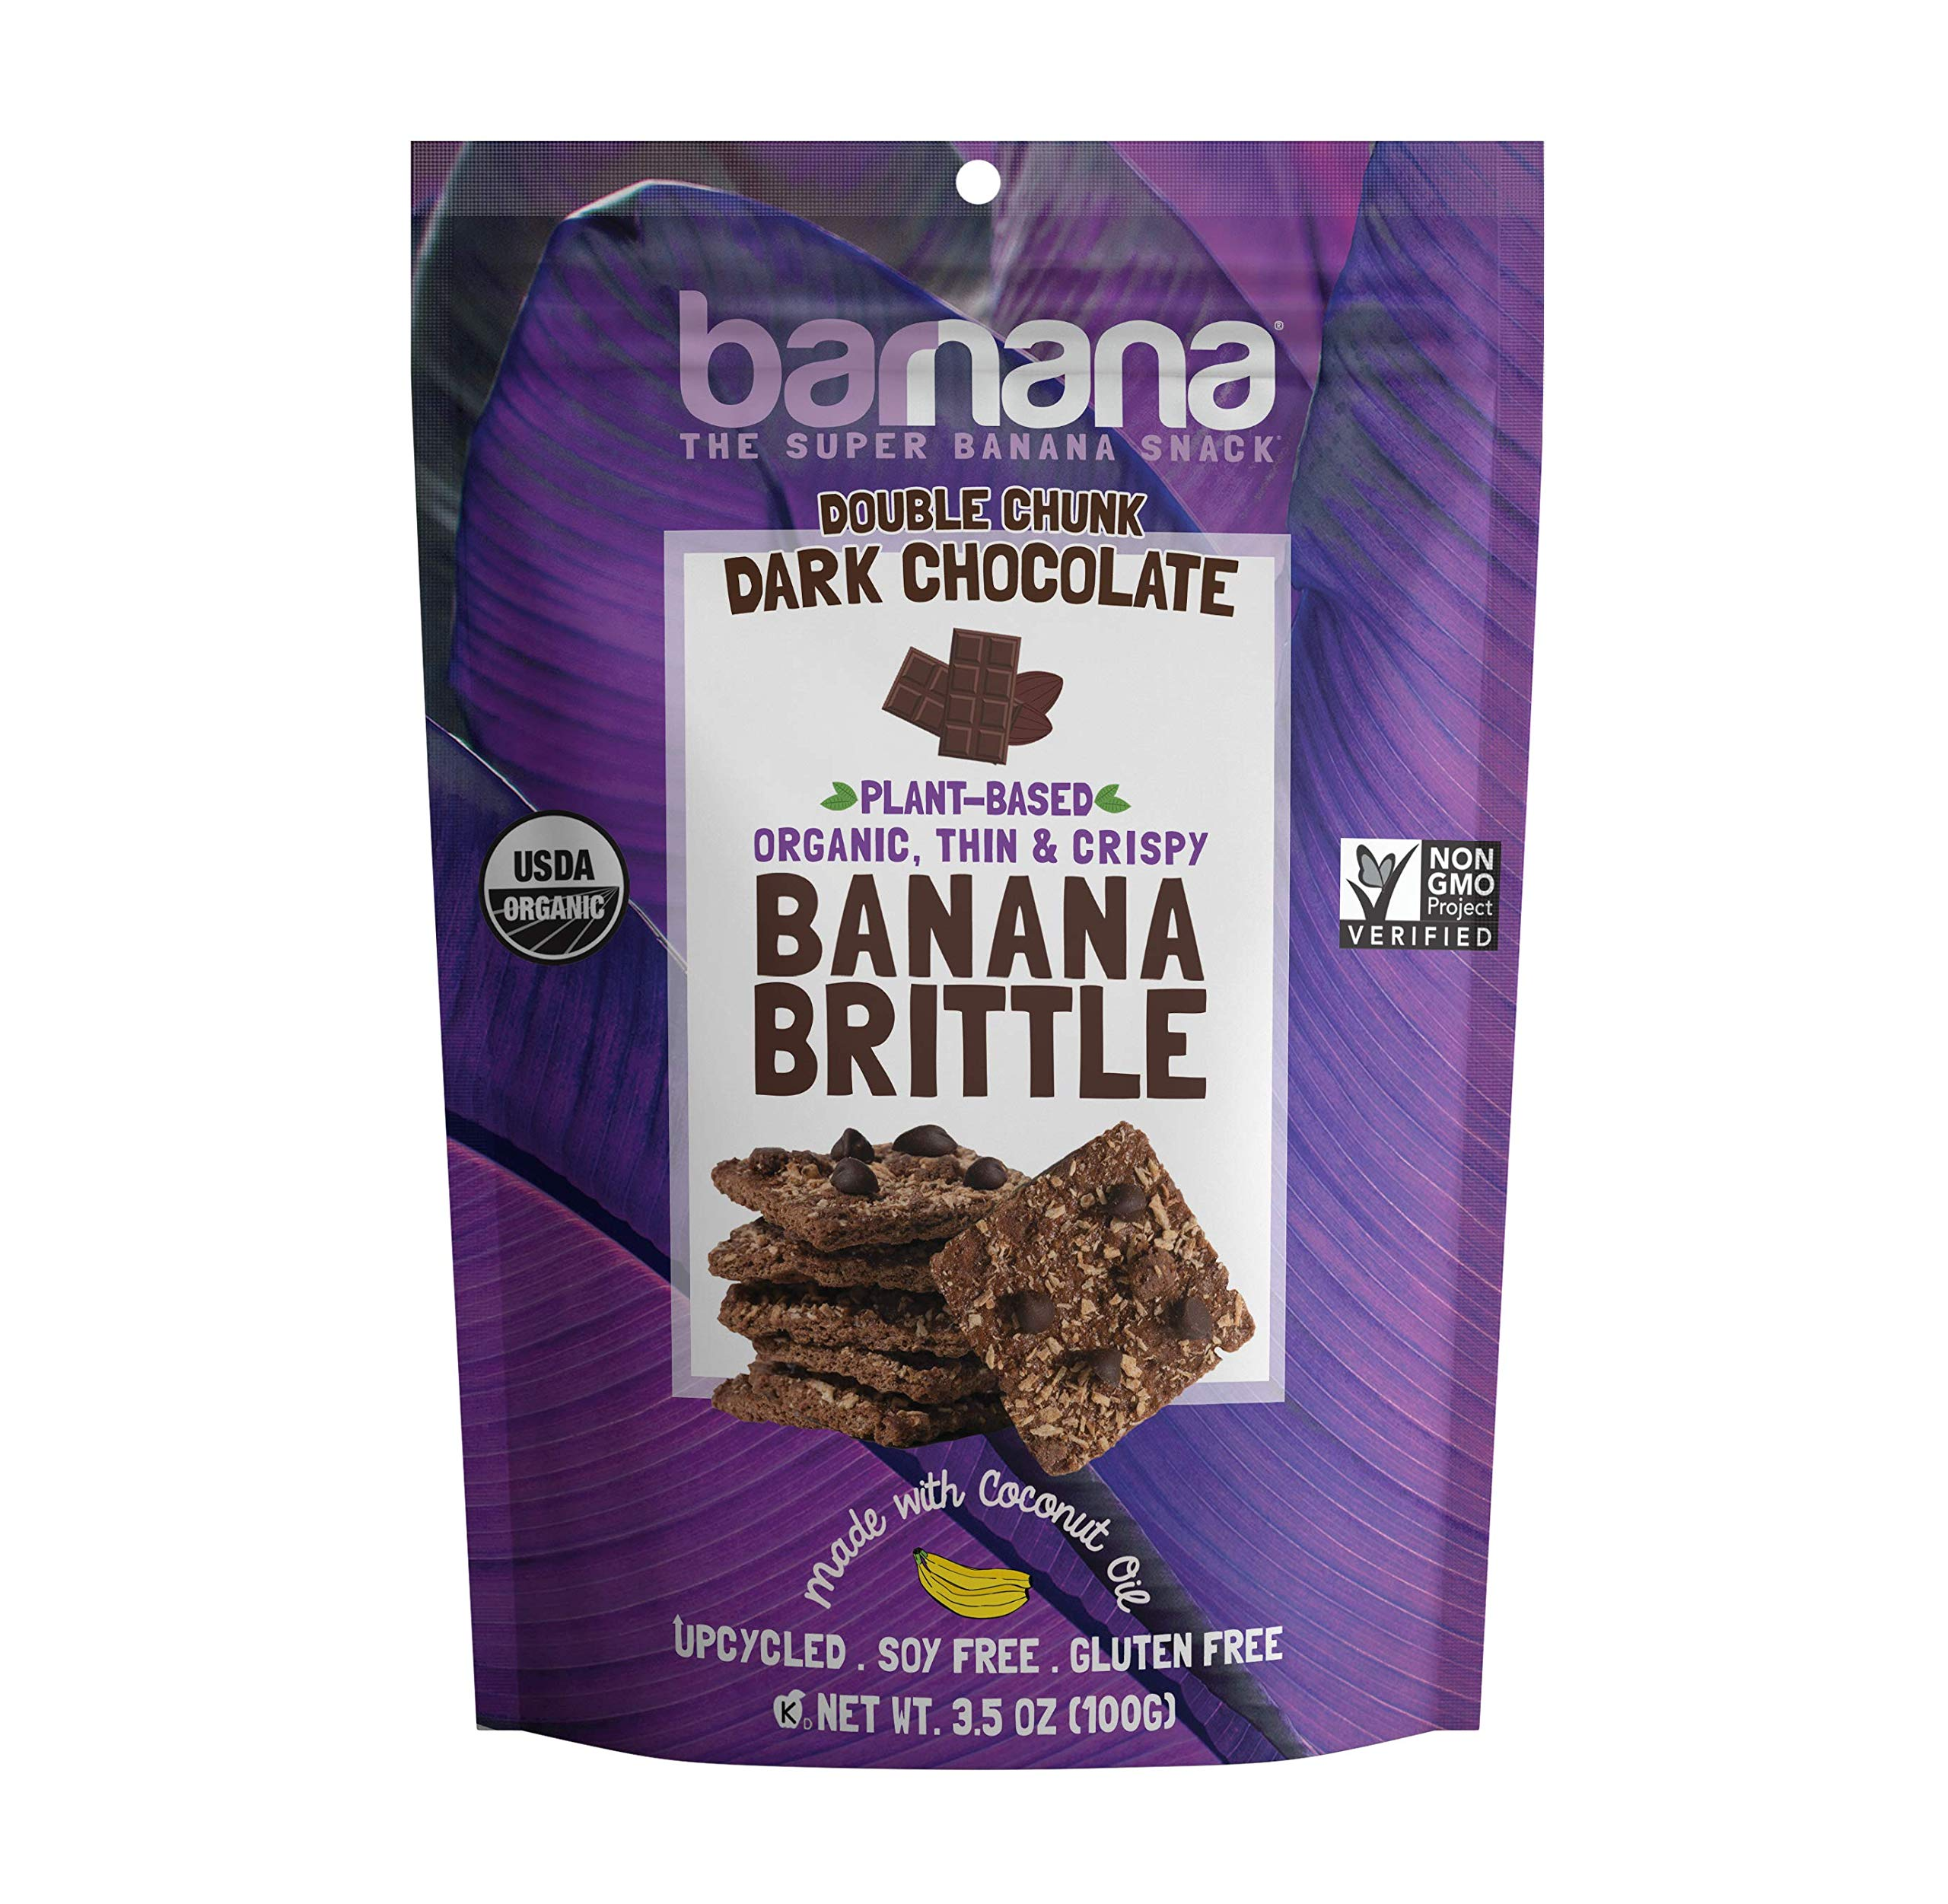 Barnana Organic Crunchy Banana Brittle - Double Chunk Dark Chocolate, 3.5 Ounce - Healthy Vegan Cookie Style Dessert Snack - Made with Sustainable, Eco Friendly Upcycled Bananas